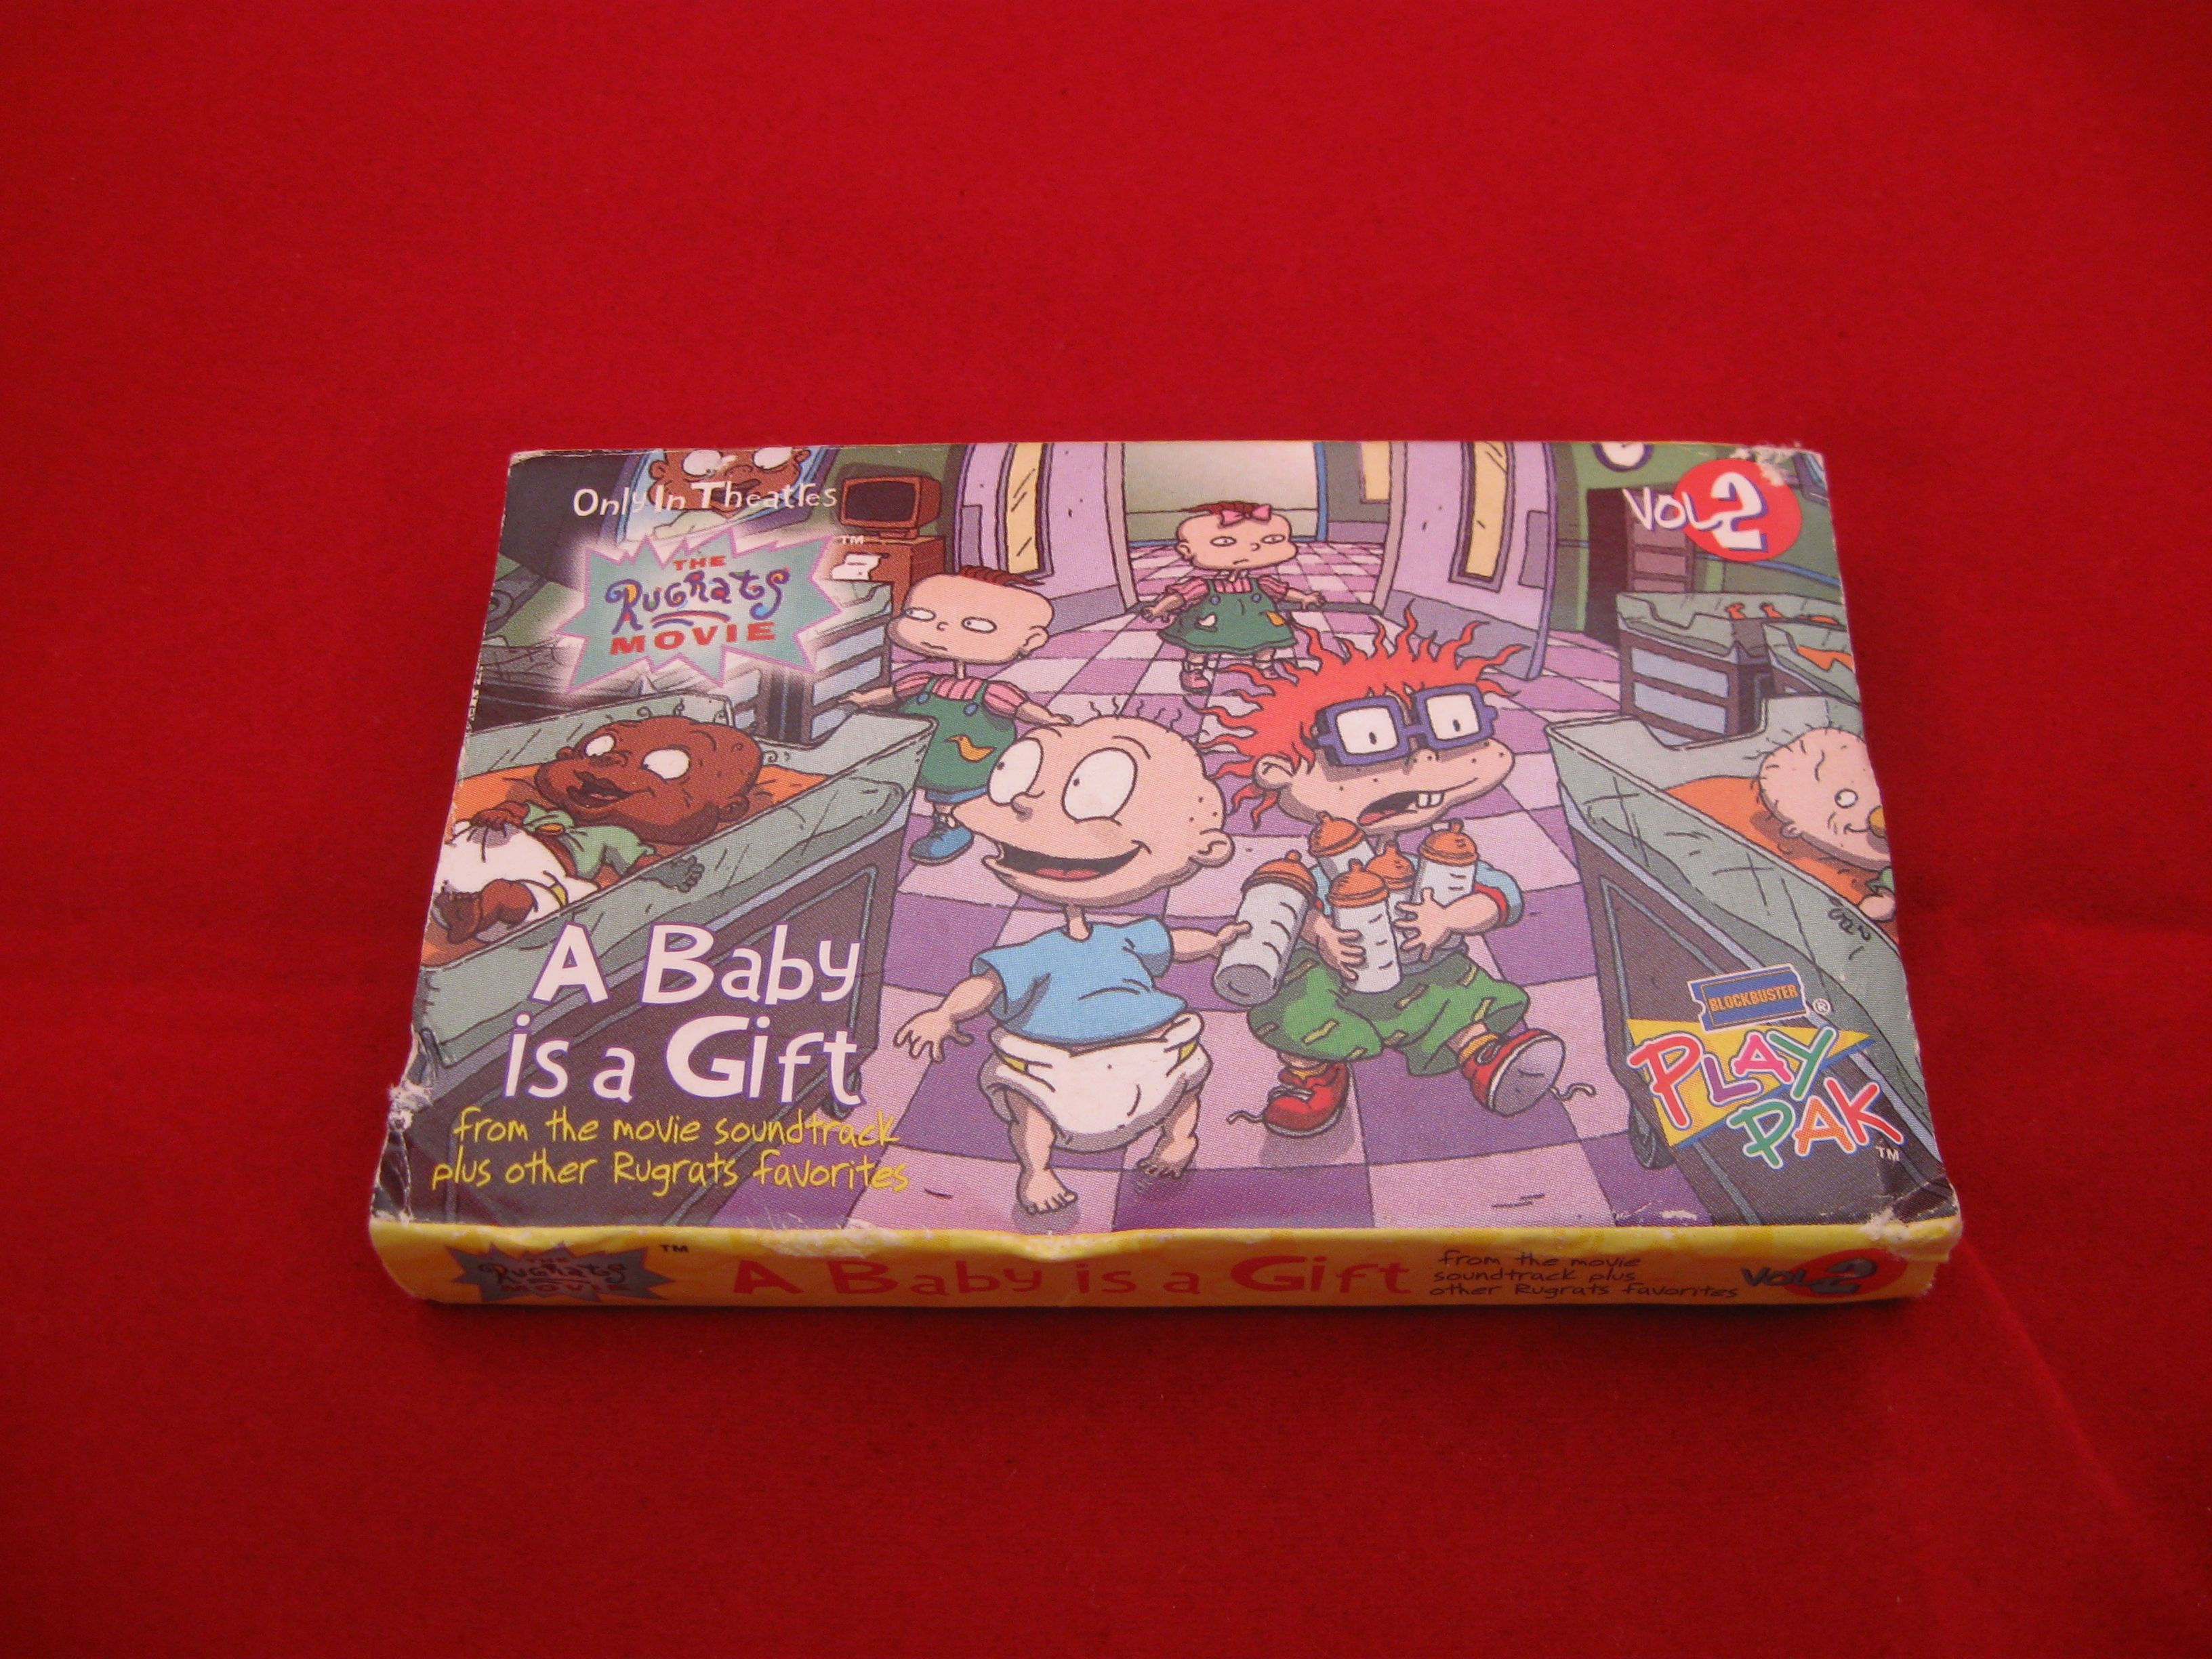 Pics photos description from nick jr favorites vol 2 dvd wallpaper - A Cassette Copy Of A Baby Is A Gift Volume 2 From The Rugrats Movie In